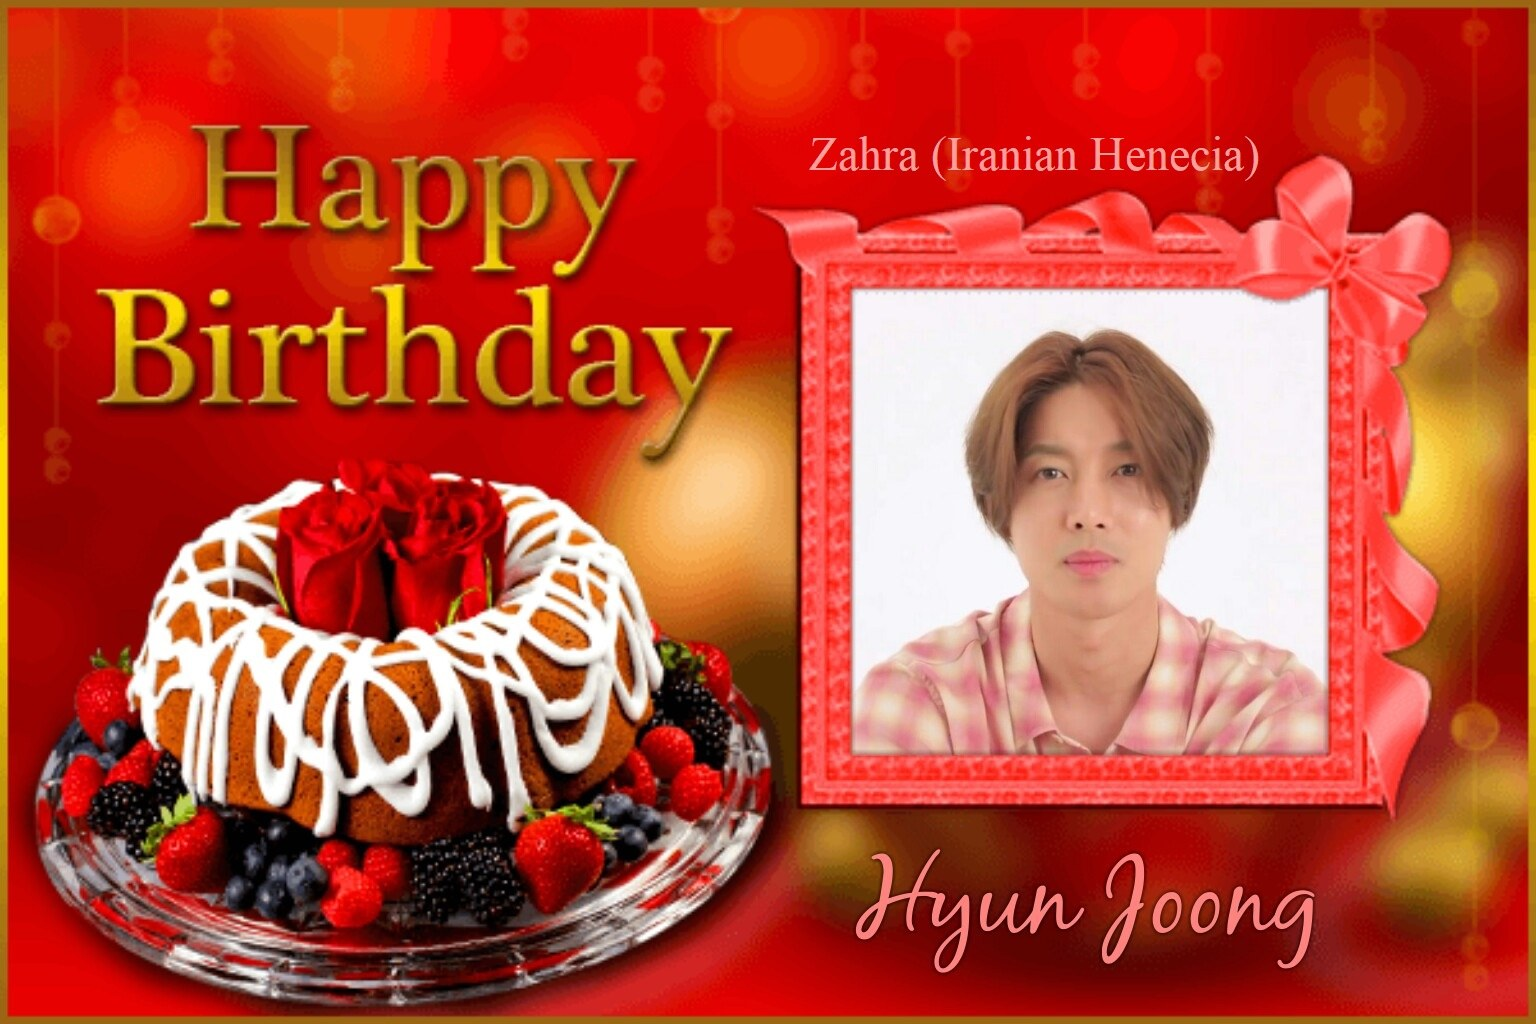 (My Fanart from Happy 32th Birtday of KHJ (8